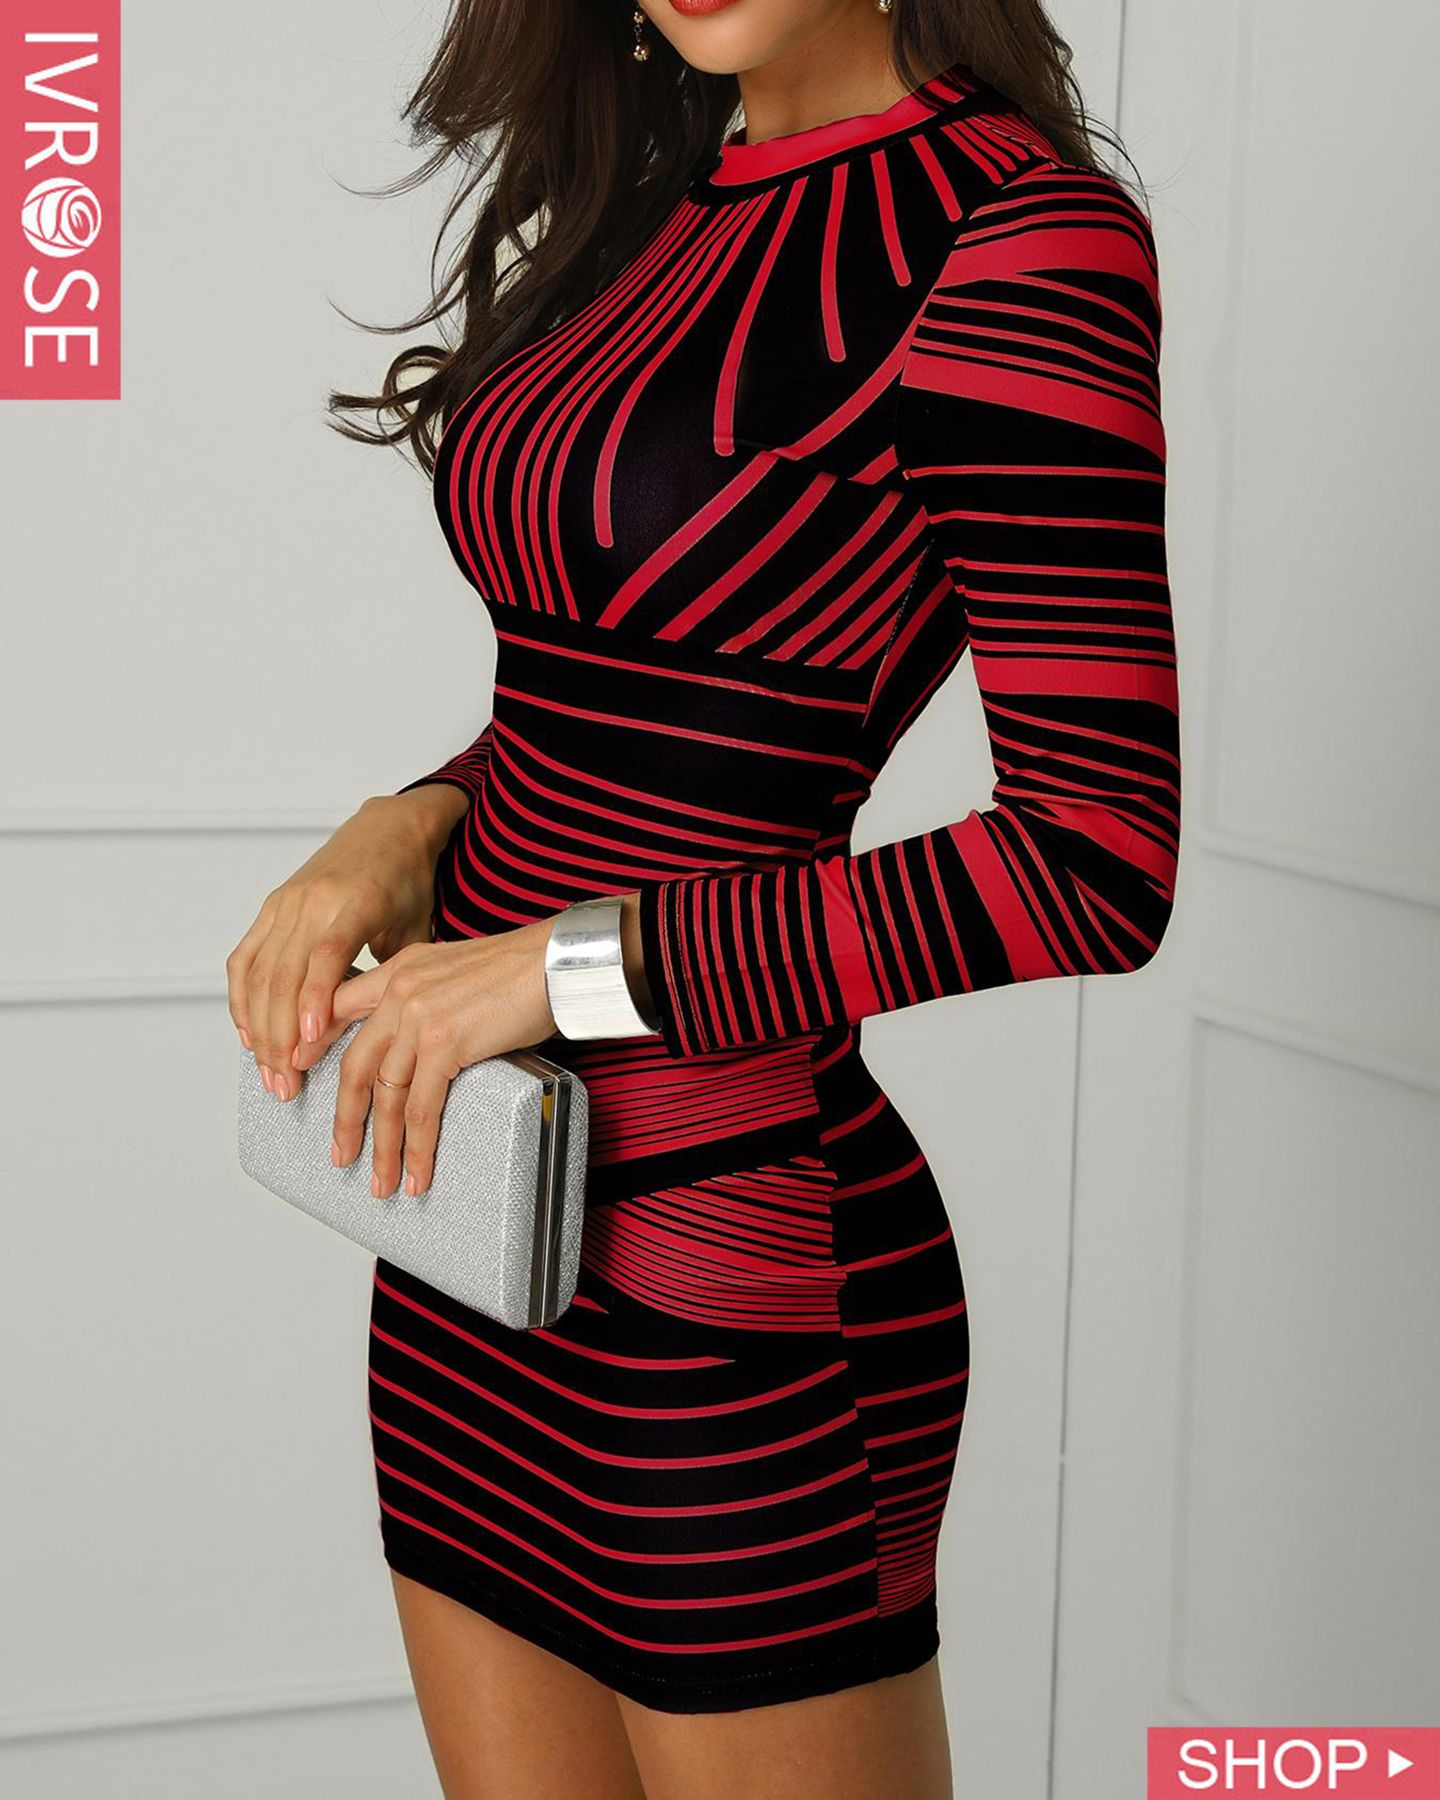 Contrast Striped Long Sleeve Bodycon Dress  Bodycon dress with